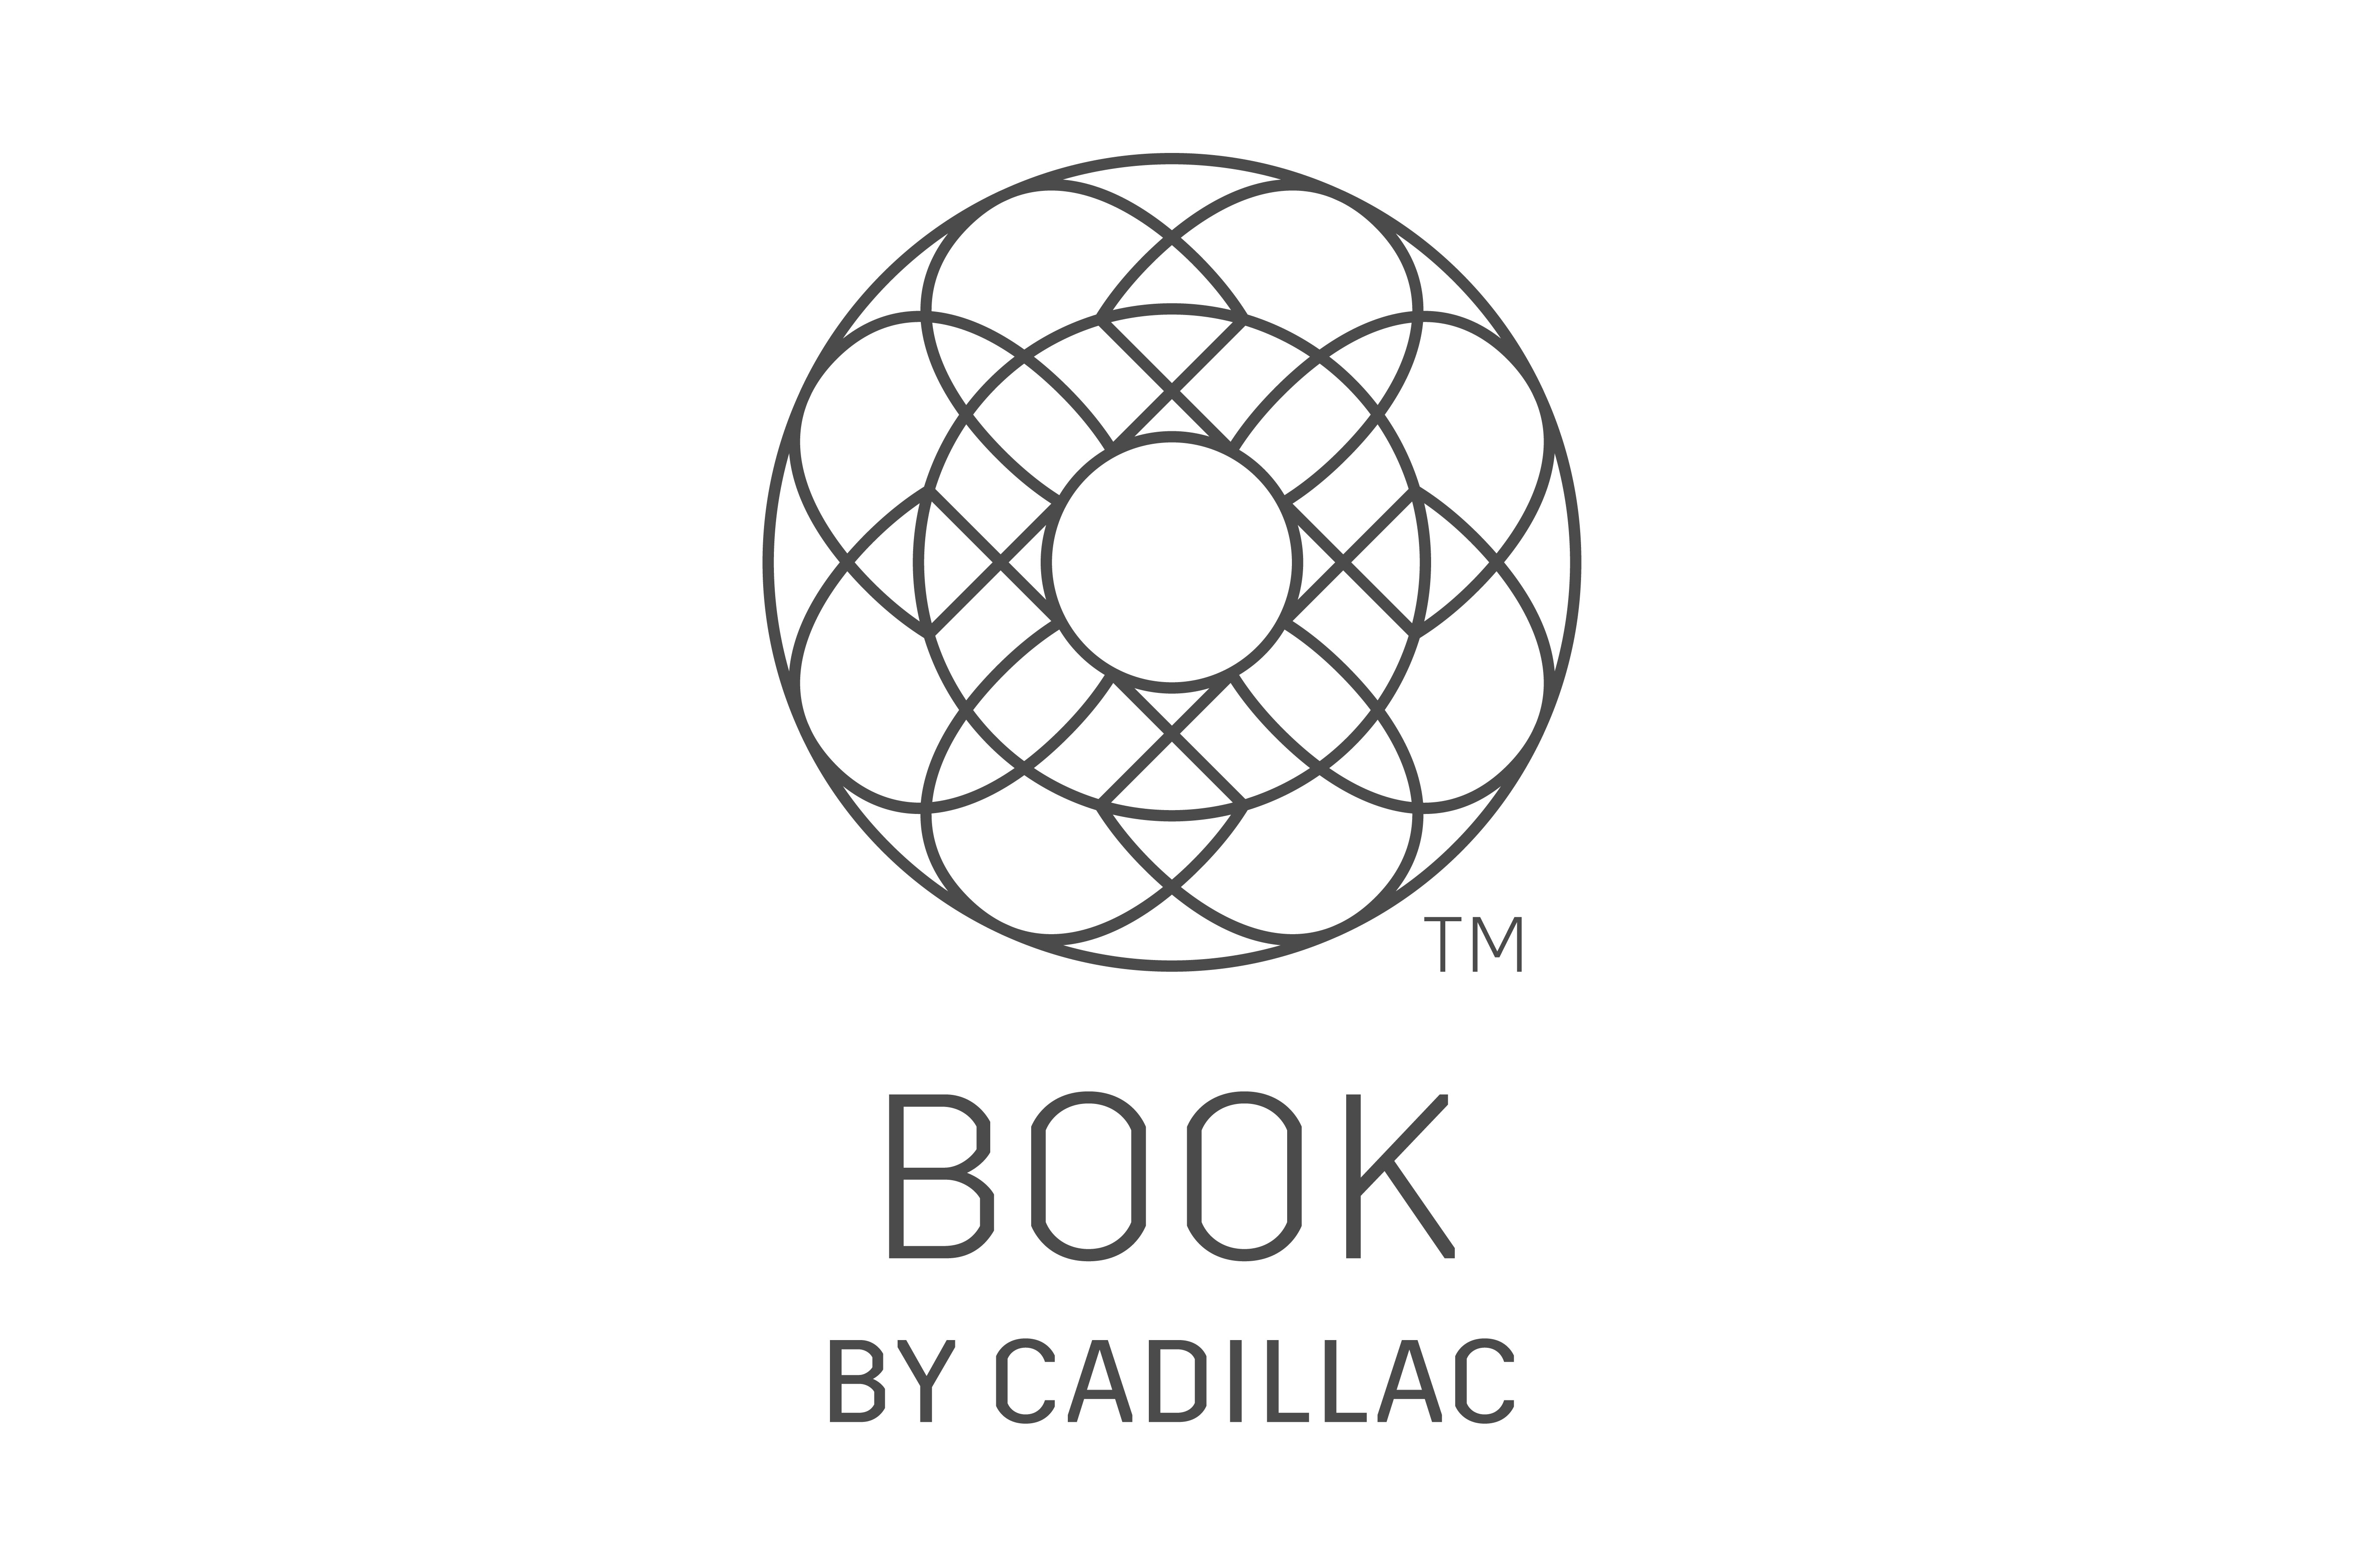 Is 'Book by Cadillac' a Failure? - GM Inside News